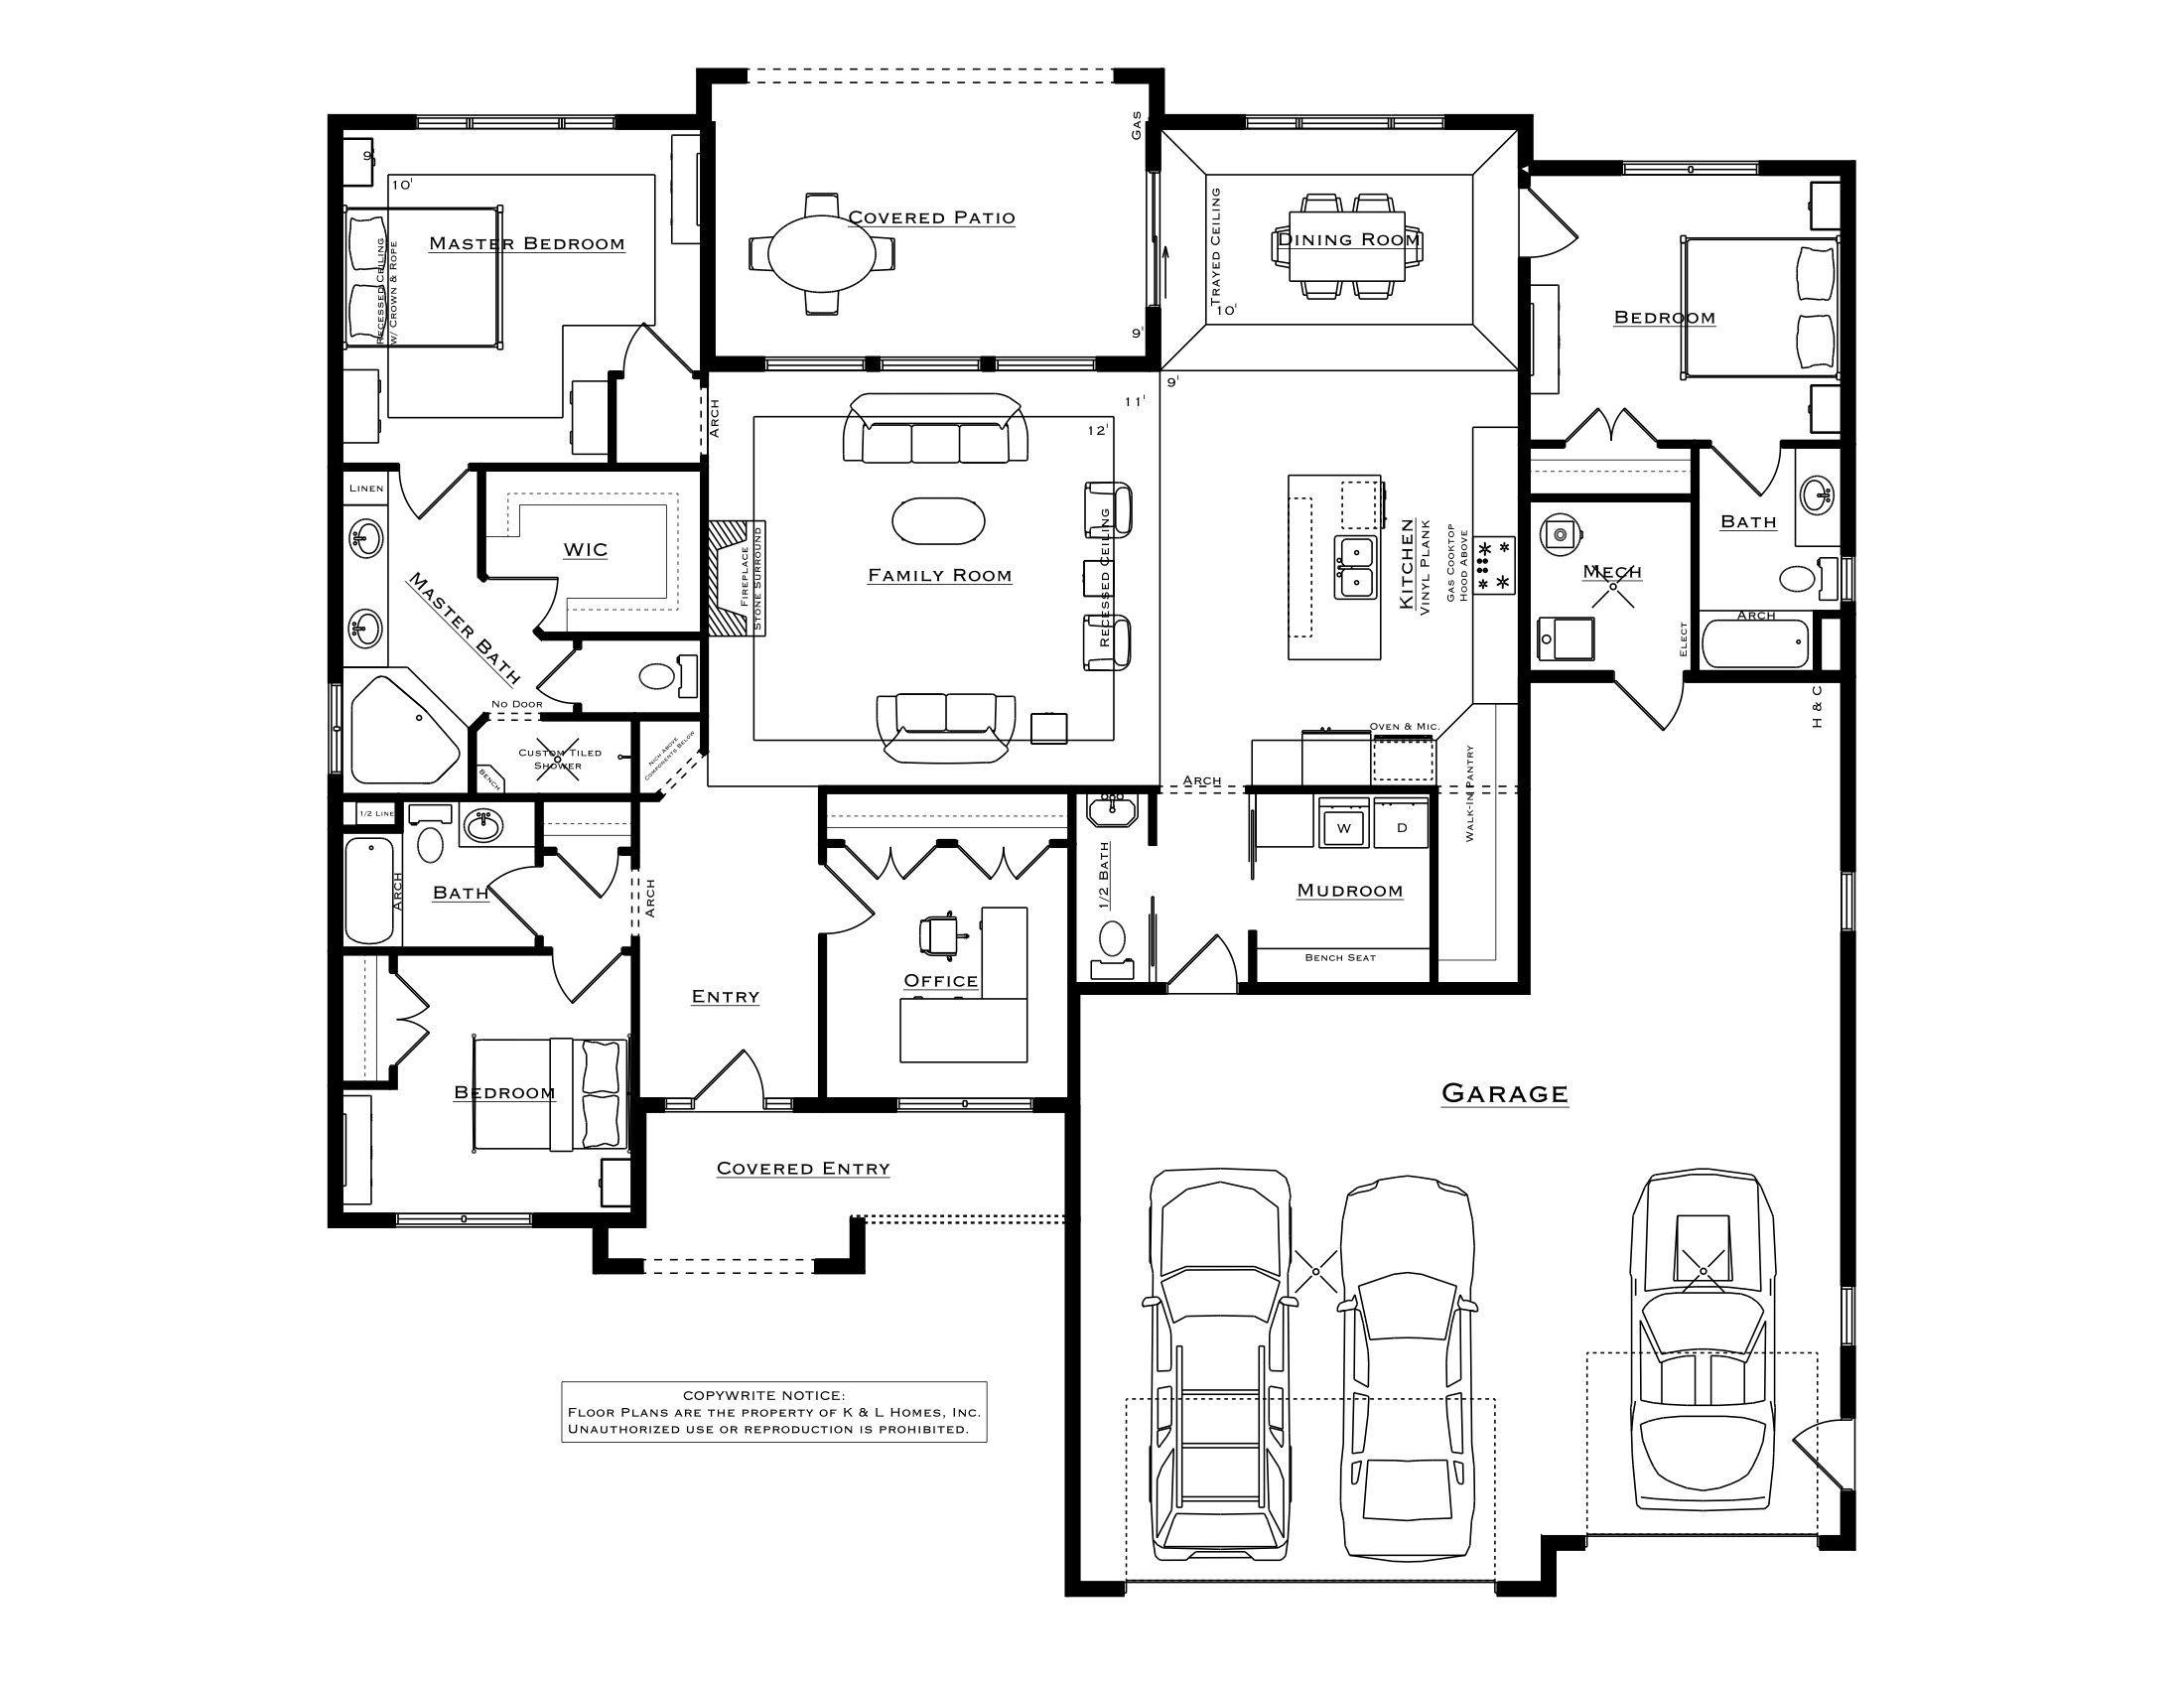 3 Bedroom Sanibel Plan